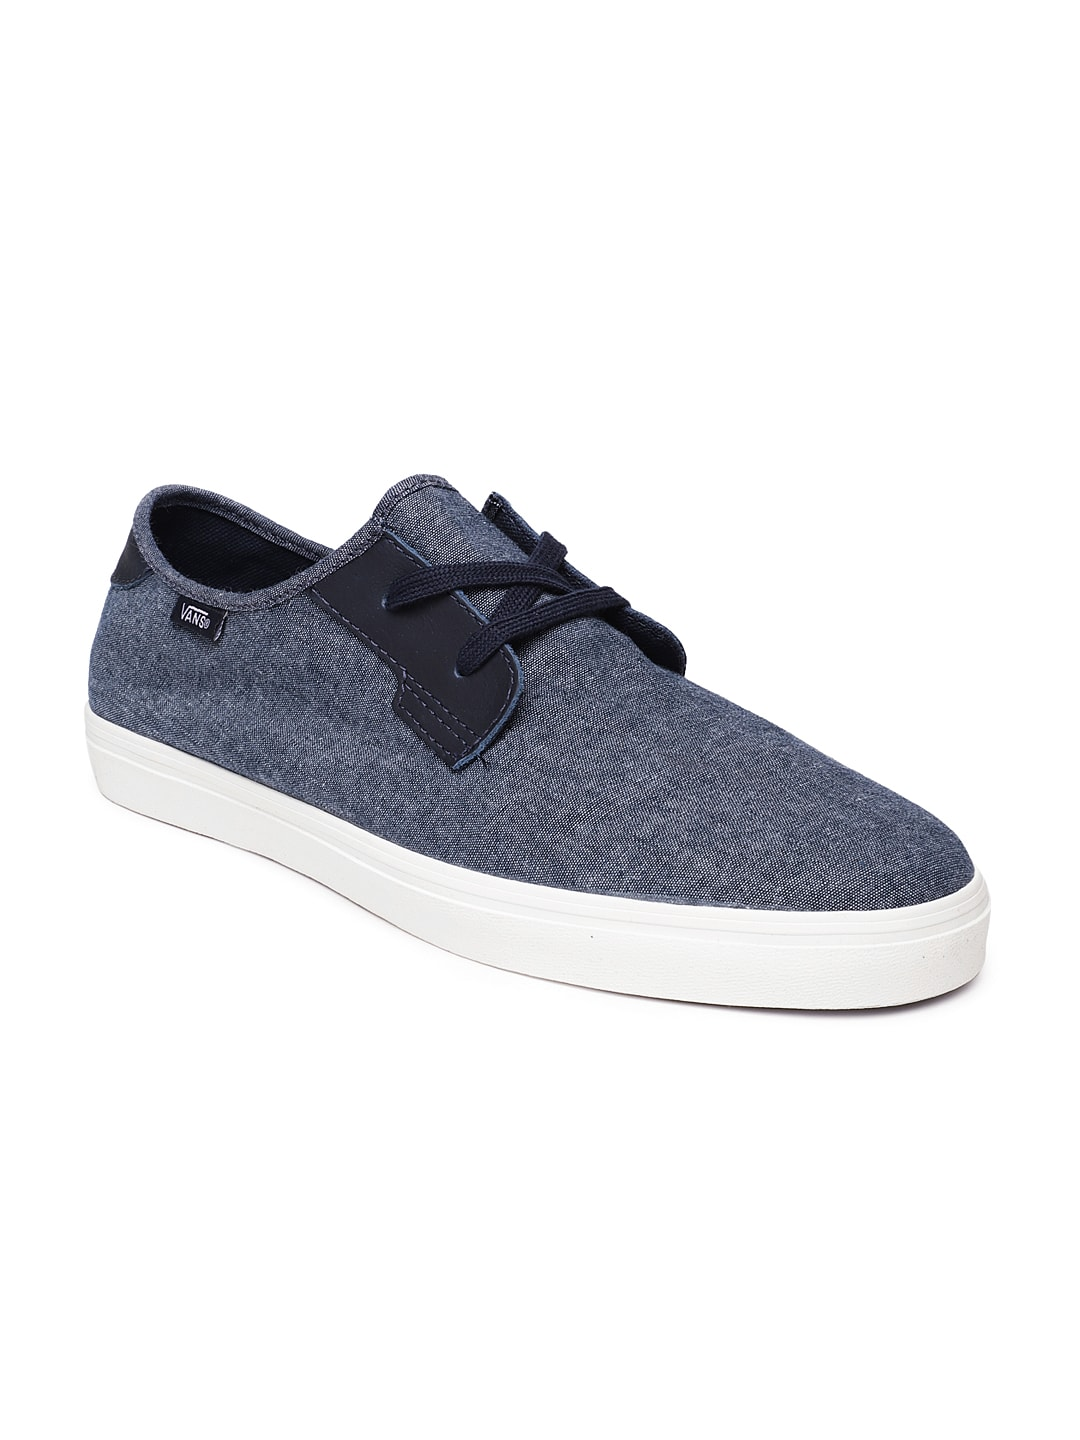 807e397aa5 Shoes for Men - Buy Mens Shoes Online at Best Price